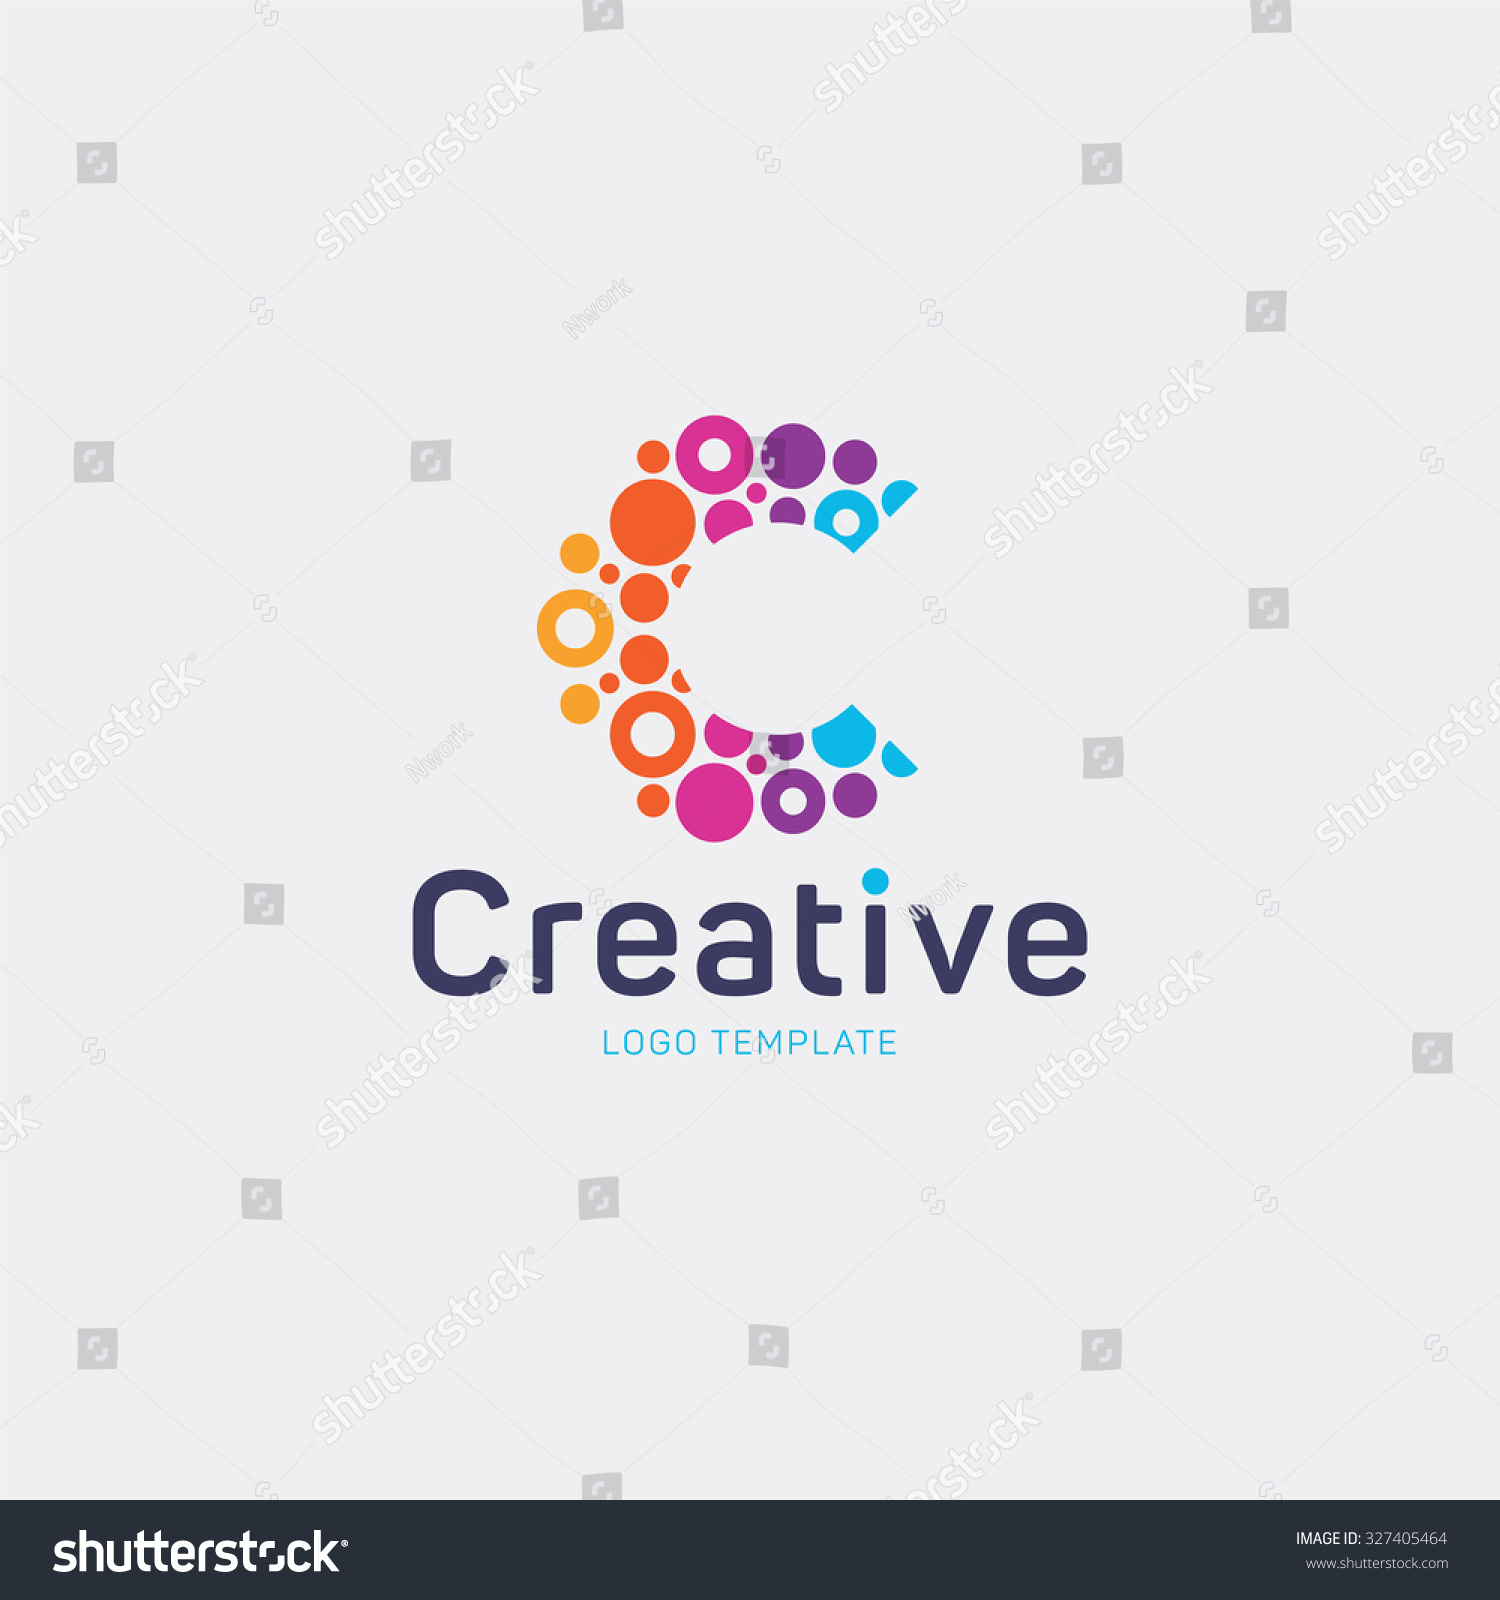 Stock Vector Creative Logo Design Letter Abstract Colorful Dots Photo Agencies Editor